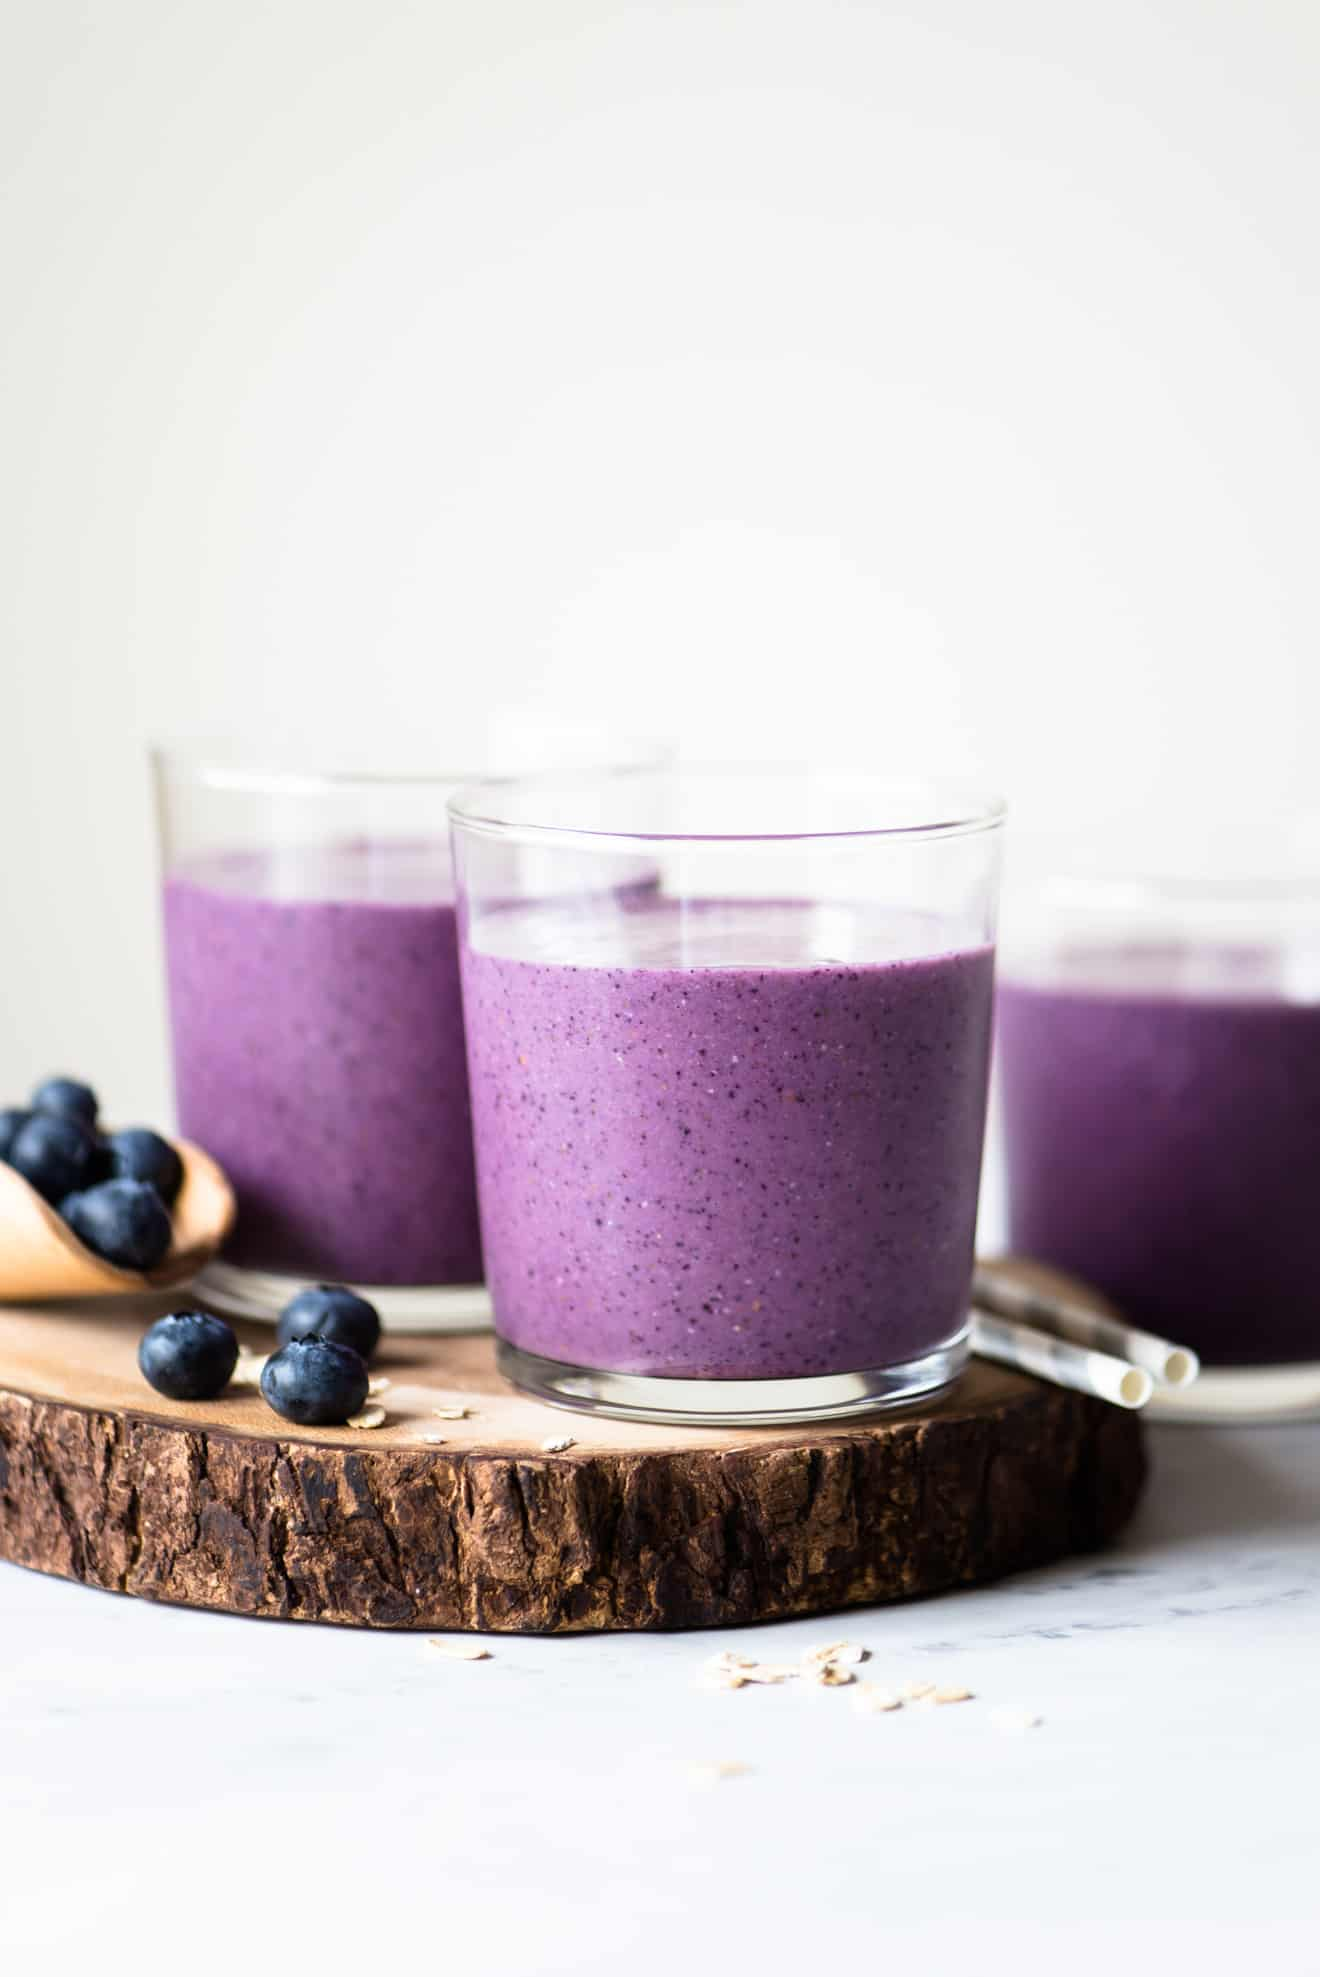 Easy Blueberry Smoothie - simple, satisfying smoothie made with just a few ingredients!